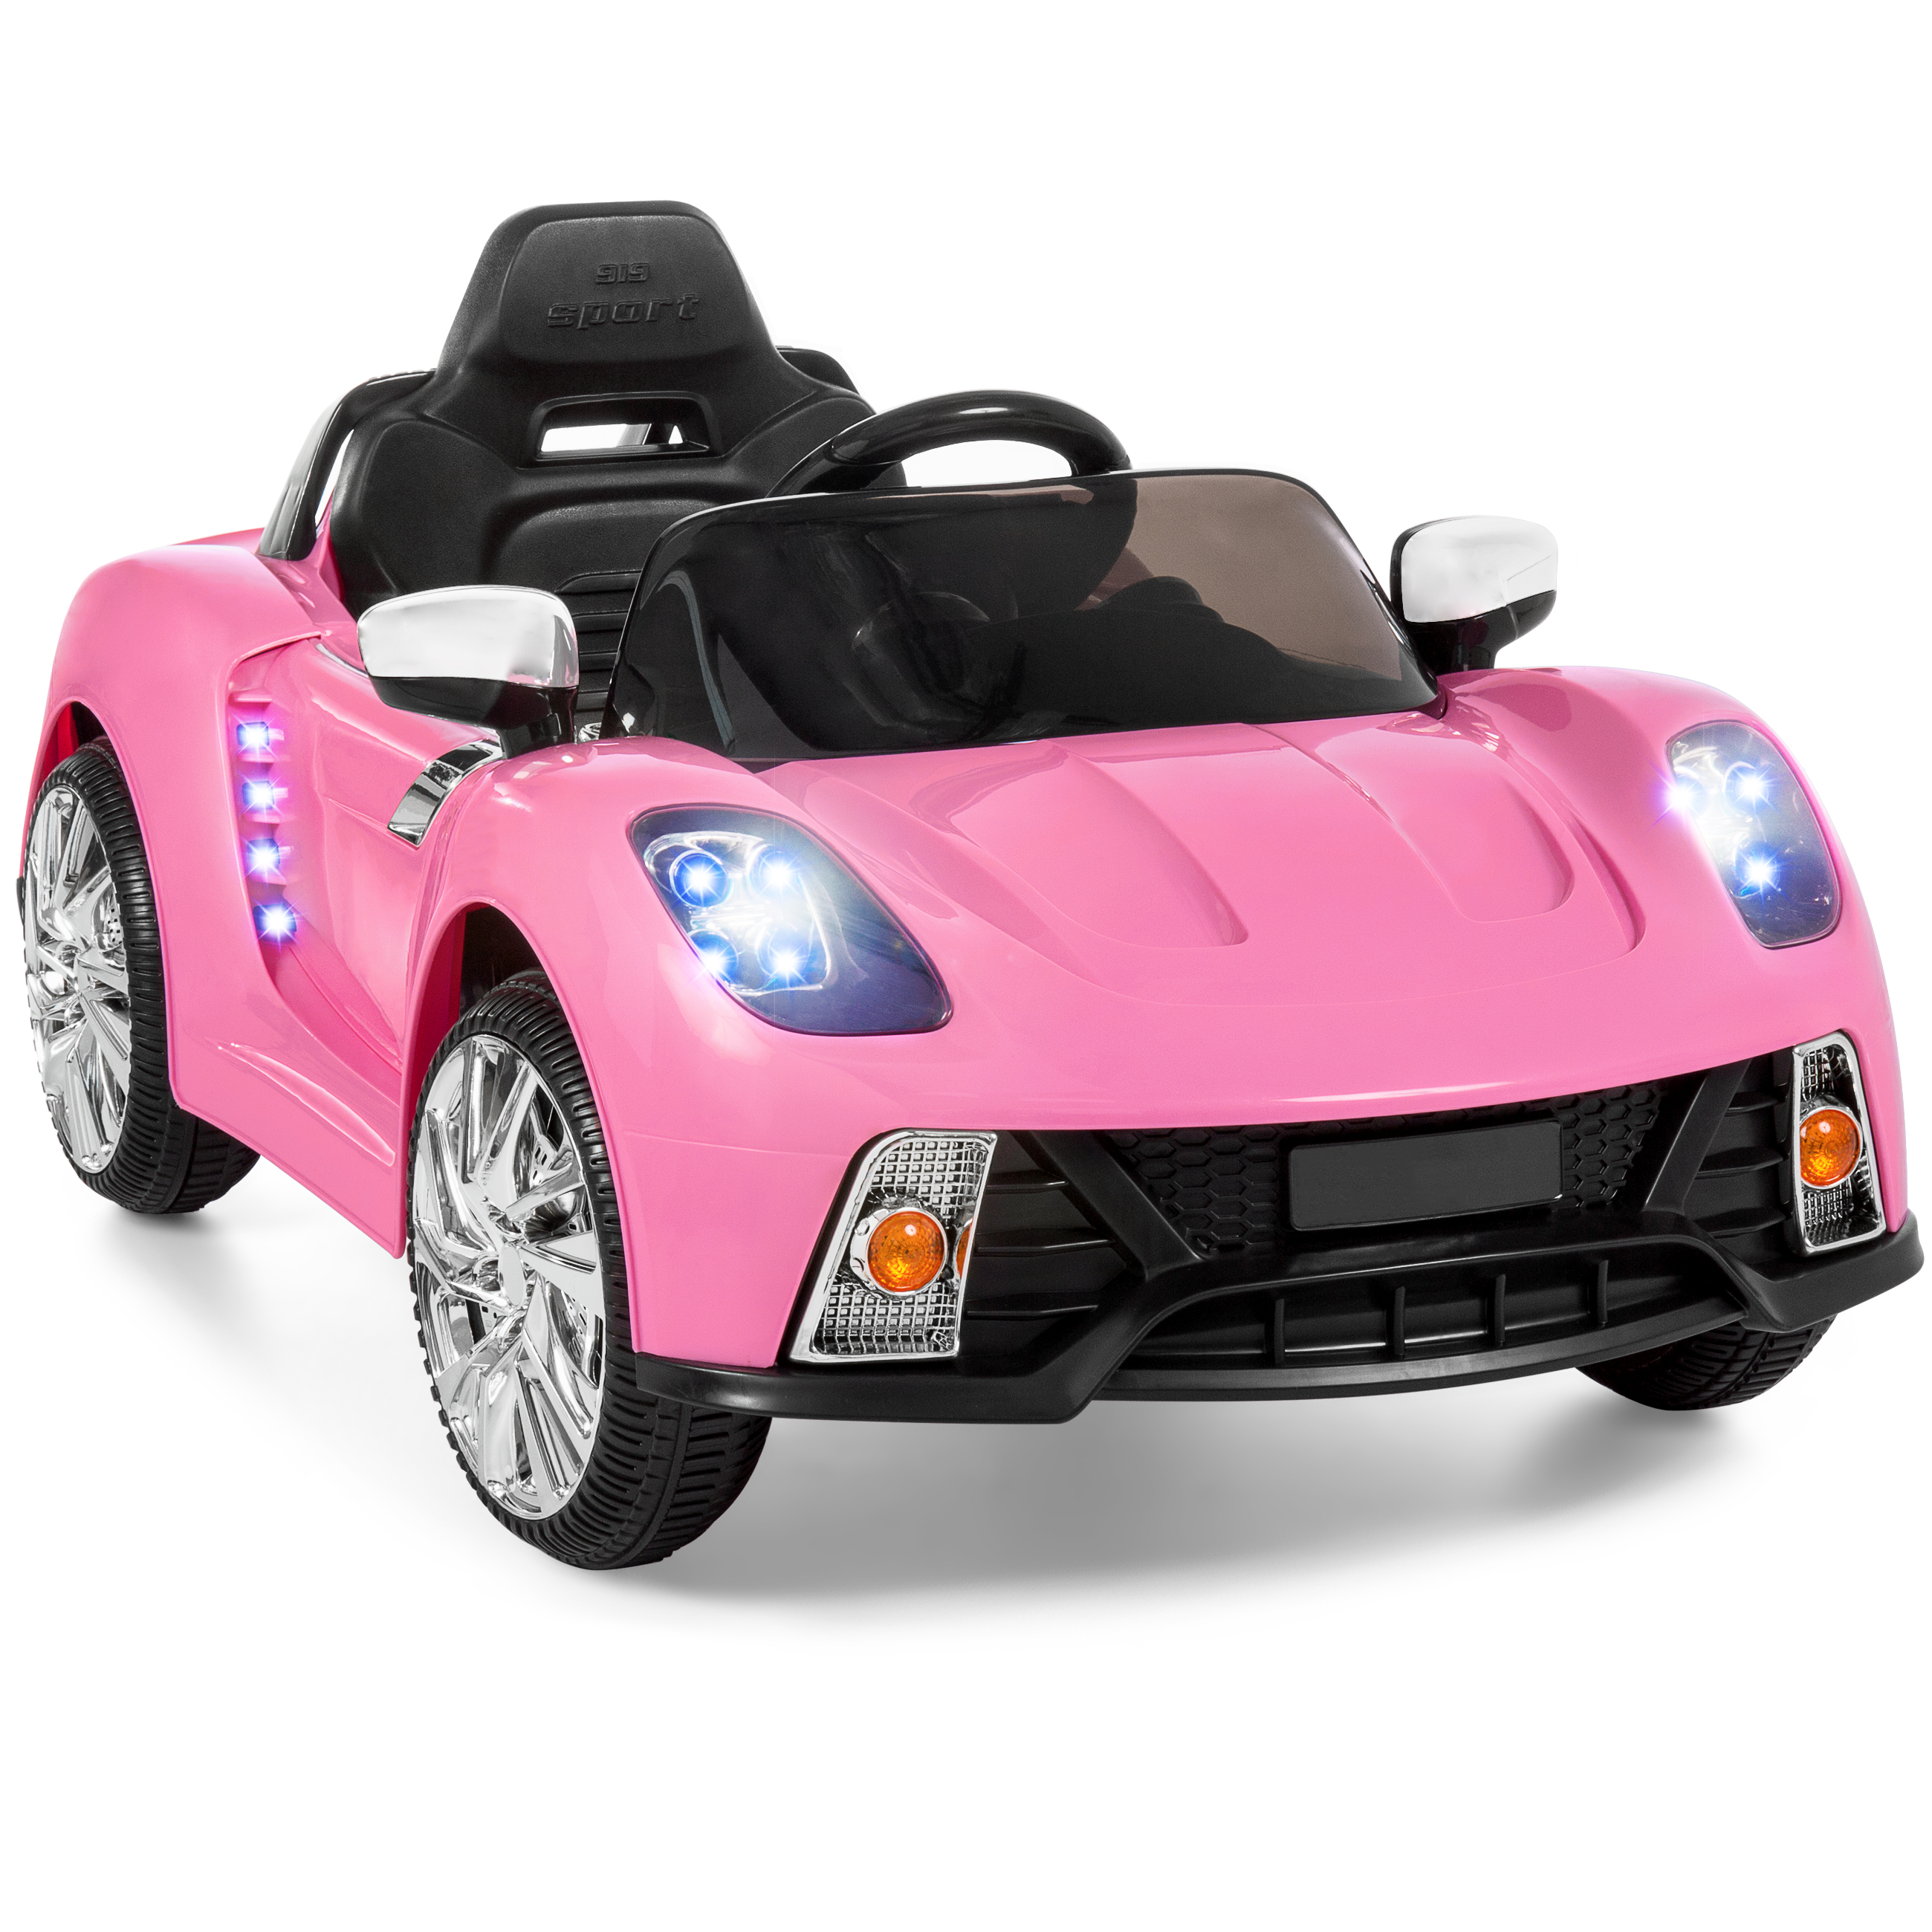 Best Choice Products 12v Kids Battery Powered Remote Control Electric Rc Ride On Car W Led Lights Mp3 Aux Pink Walmart Com Walmart Com